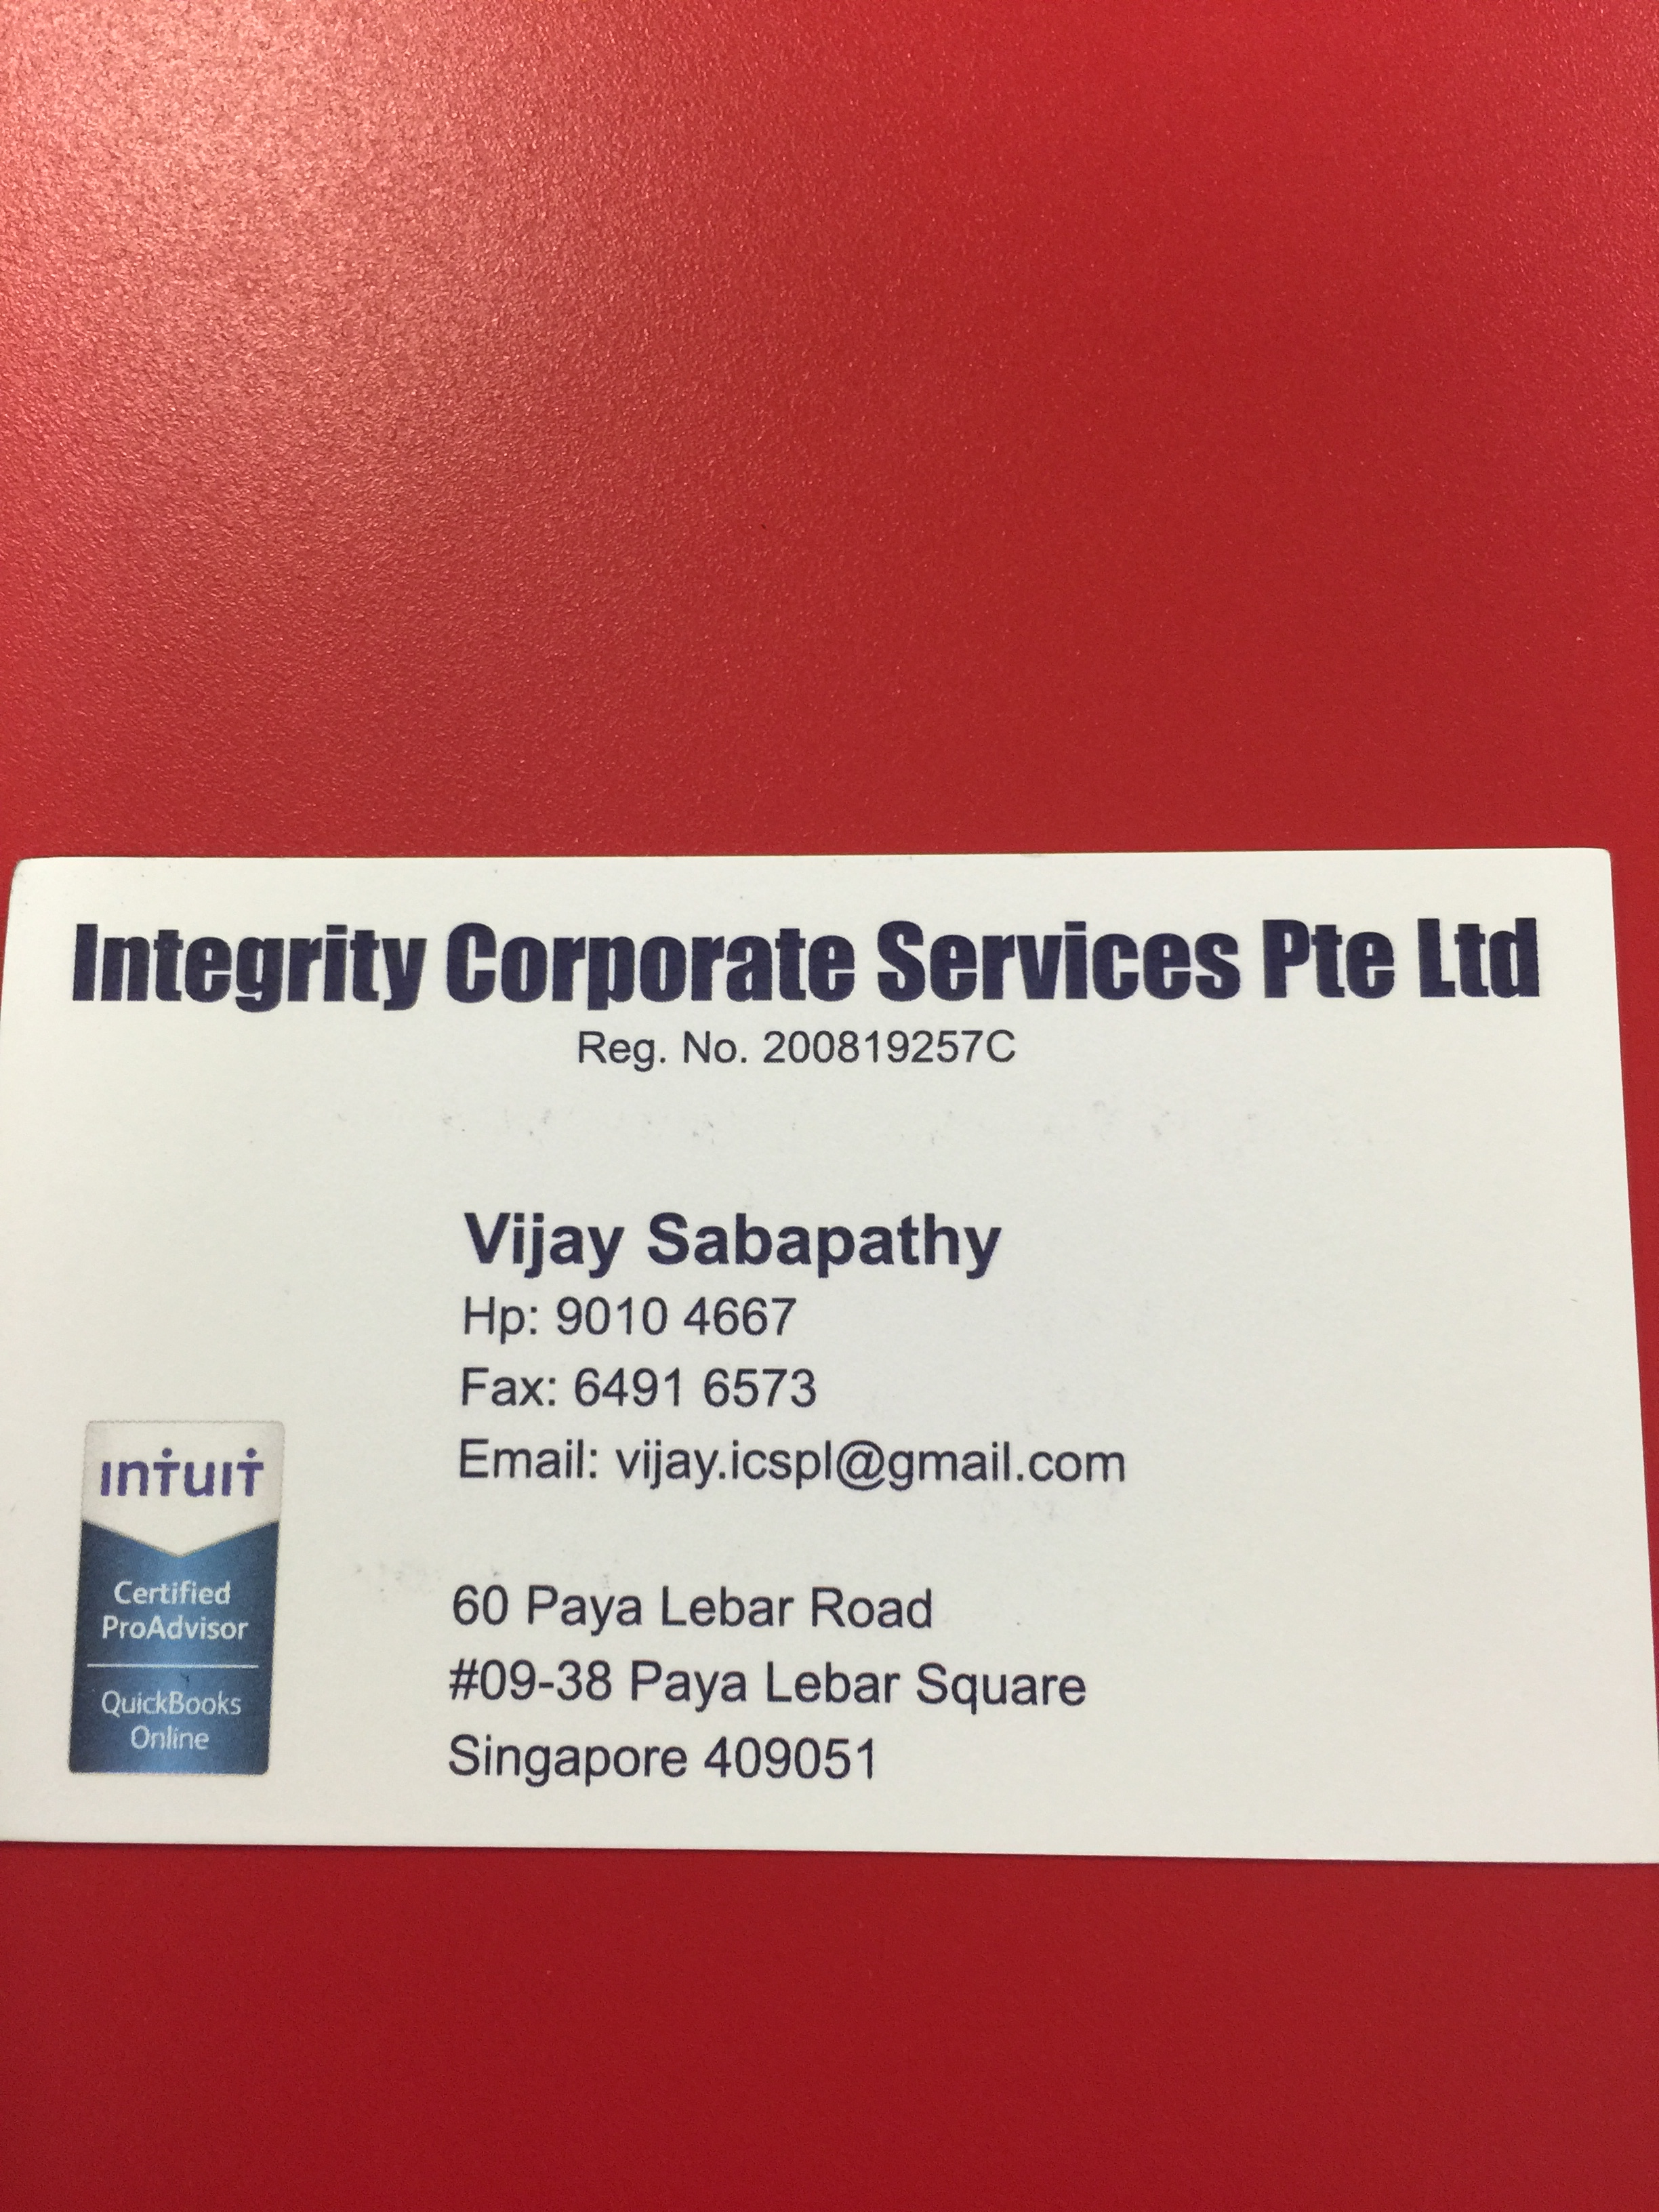 Integrity Corporate Services Pte Ltd